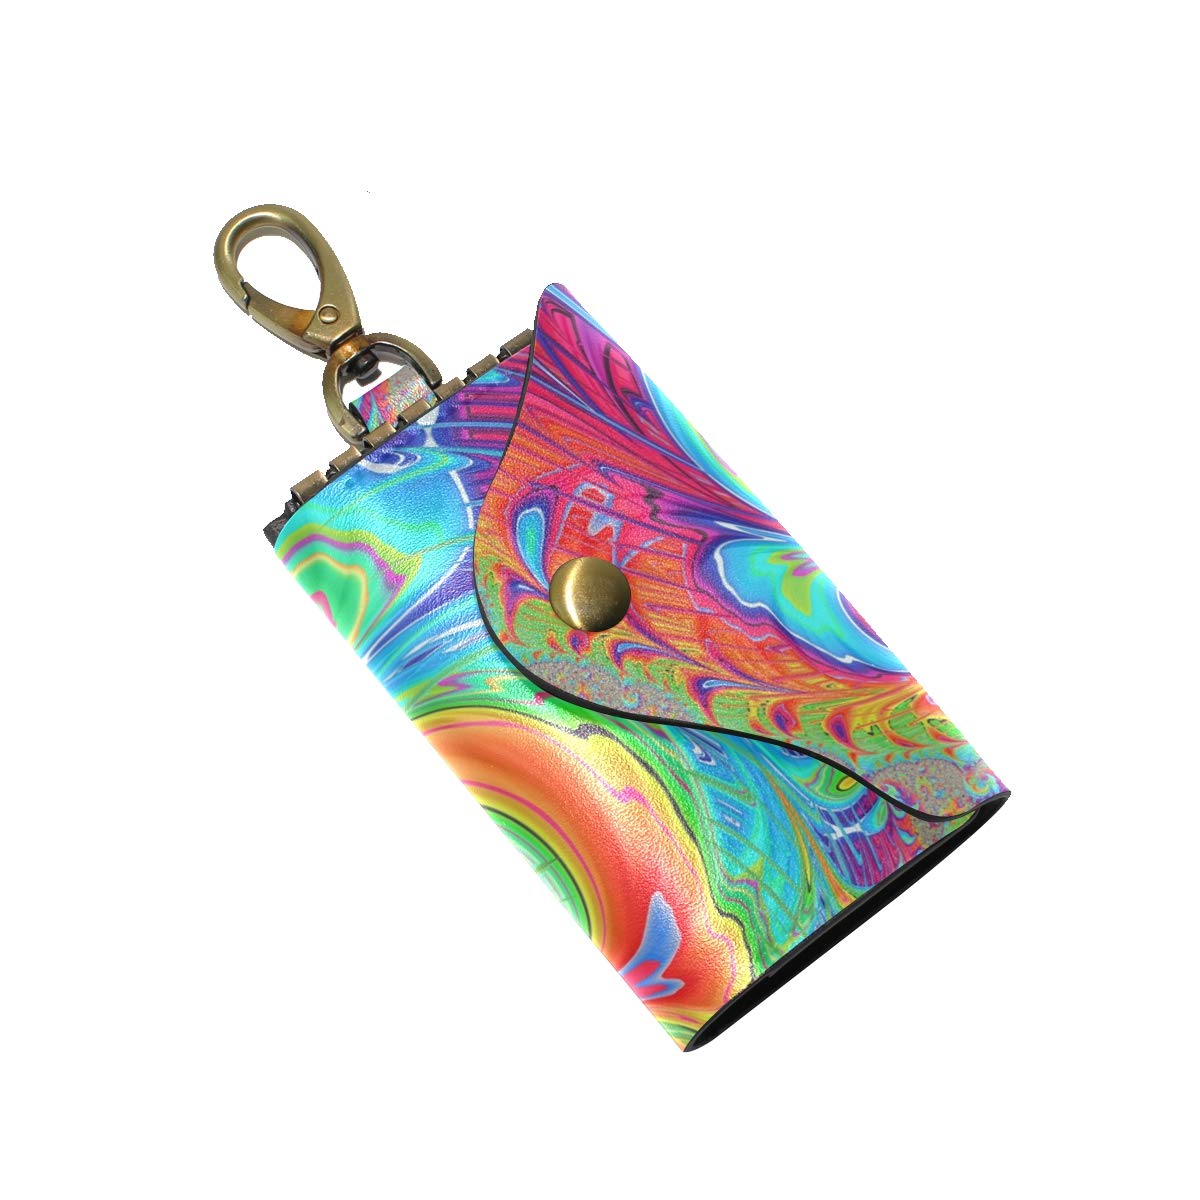 KEAKIA Fractal Art Leather Key Case Wallets Tri-fold Key Holder Keychains with 6 Hooks 2 Slot Snap Closure for Men Women